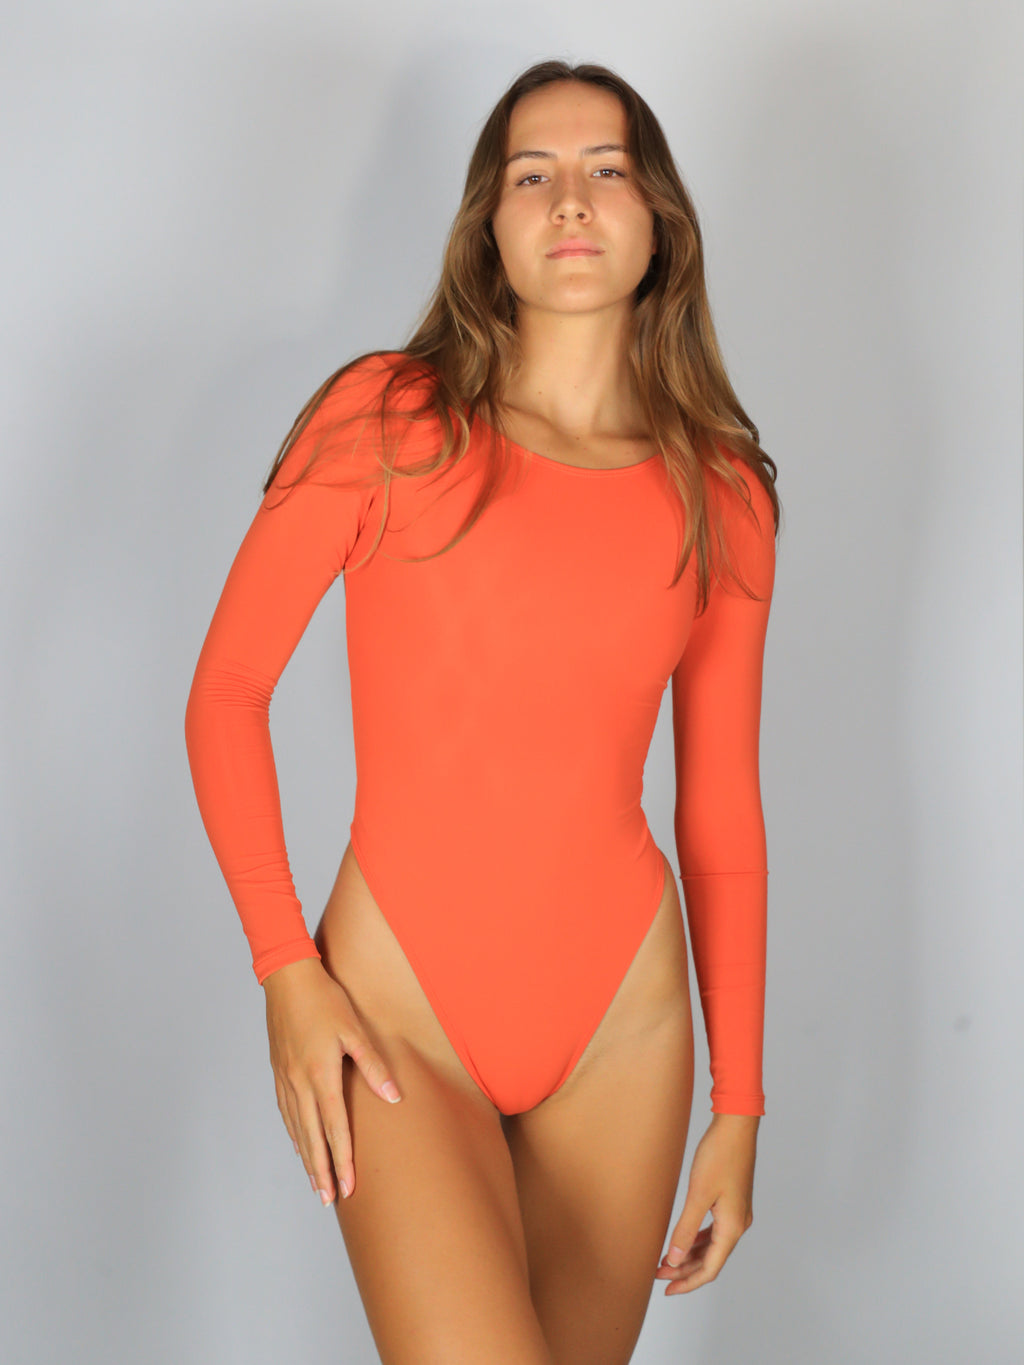 Daisy Duke One-Piece / Autumn